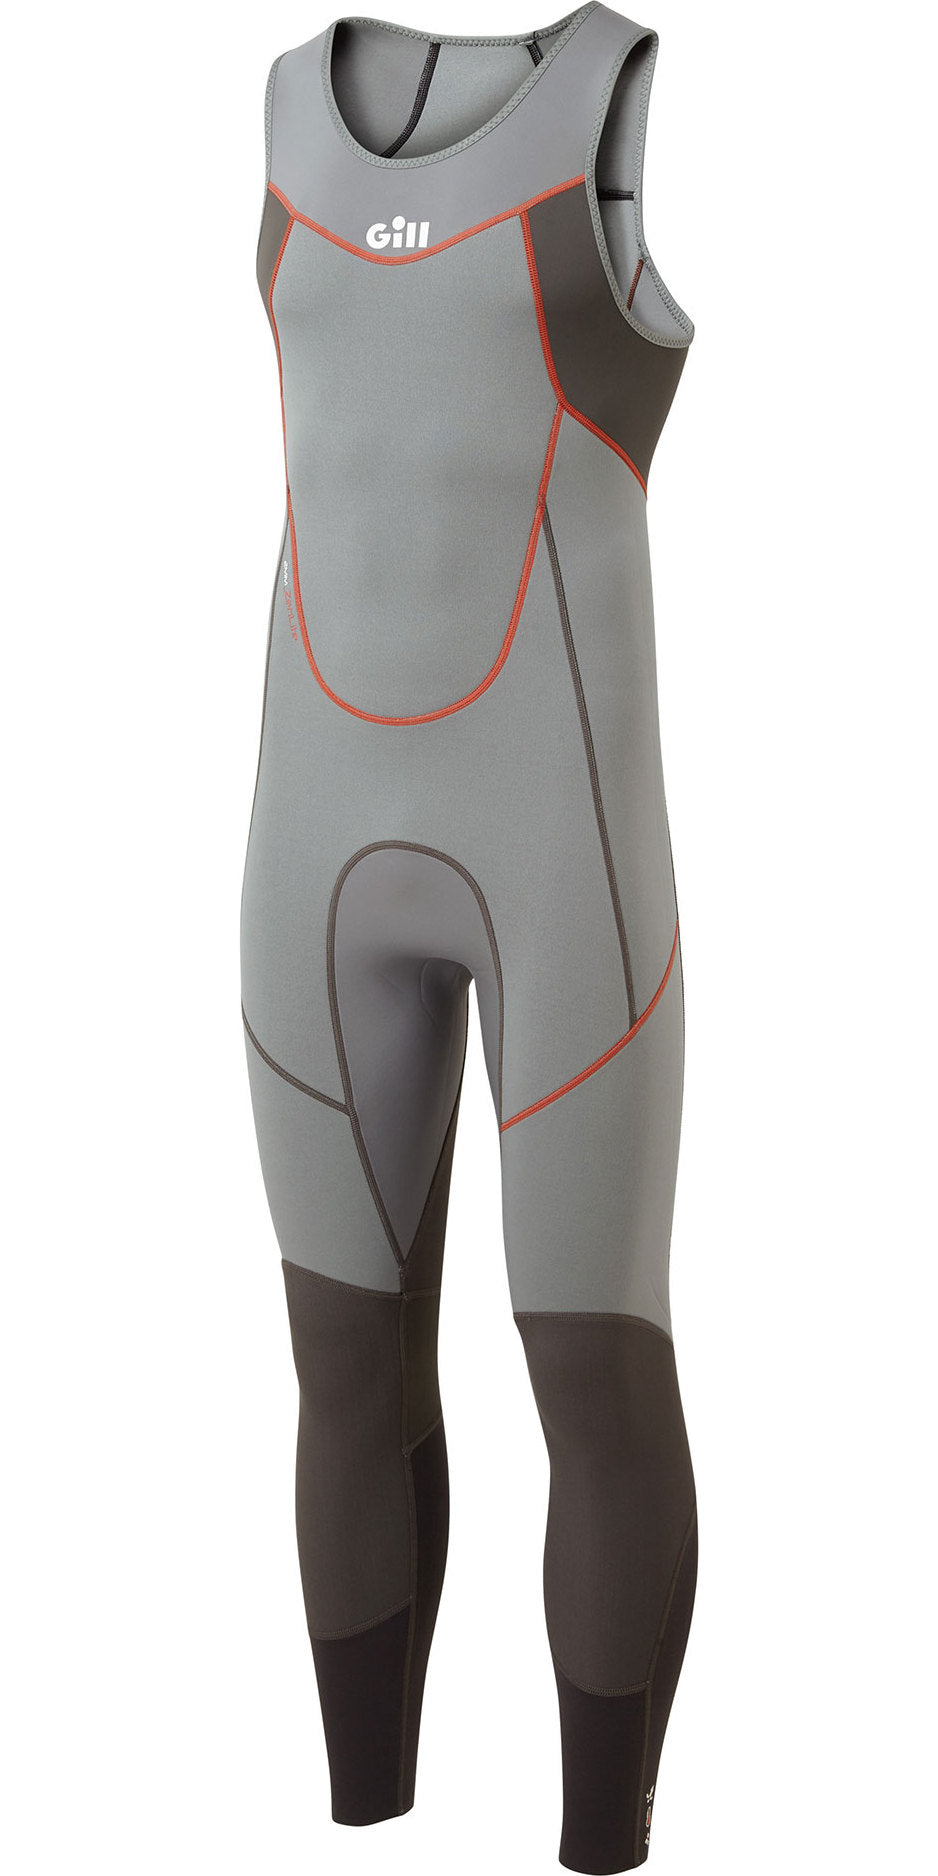 Gill Men's Zenlite Skiff Suit Steel Grey